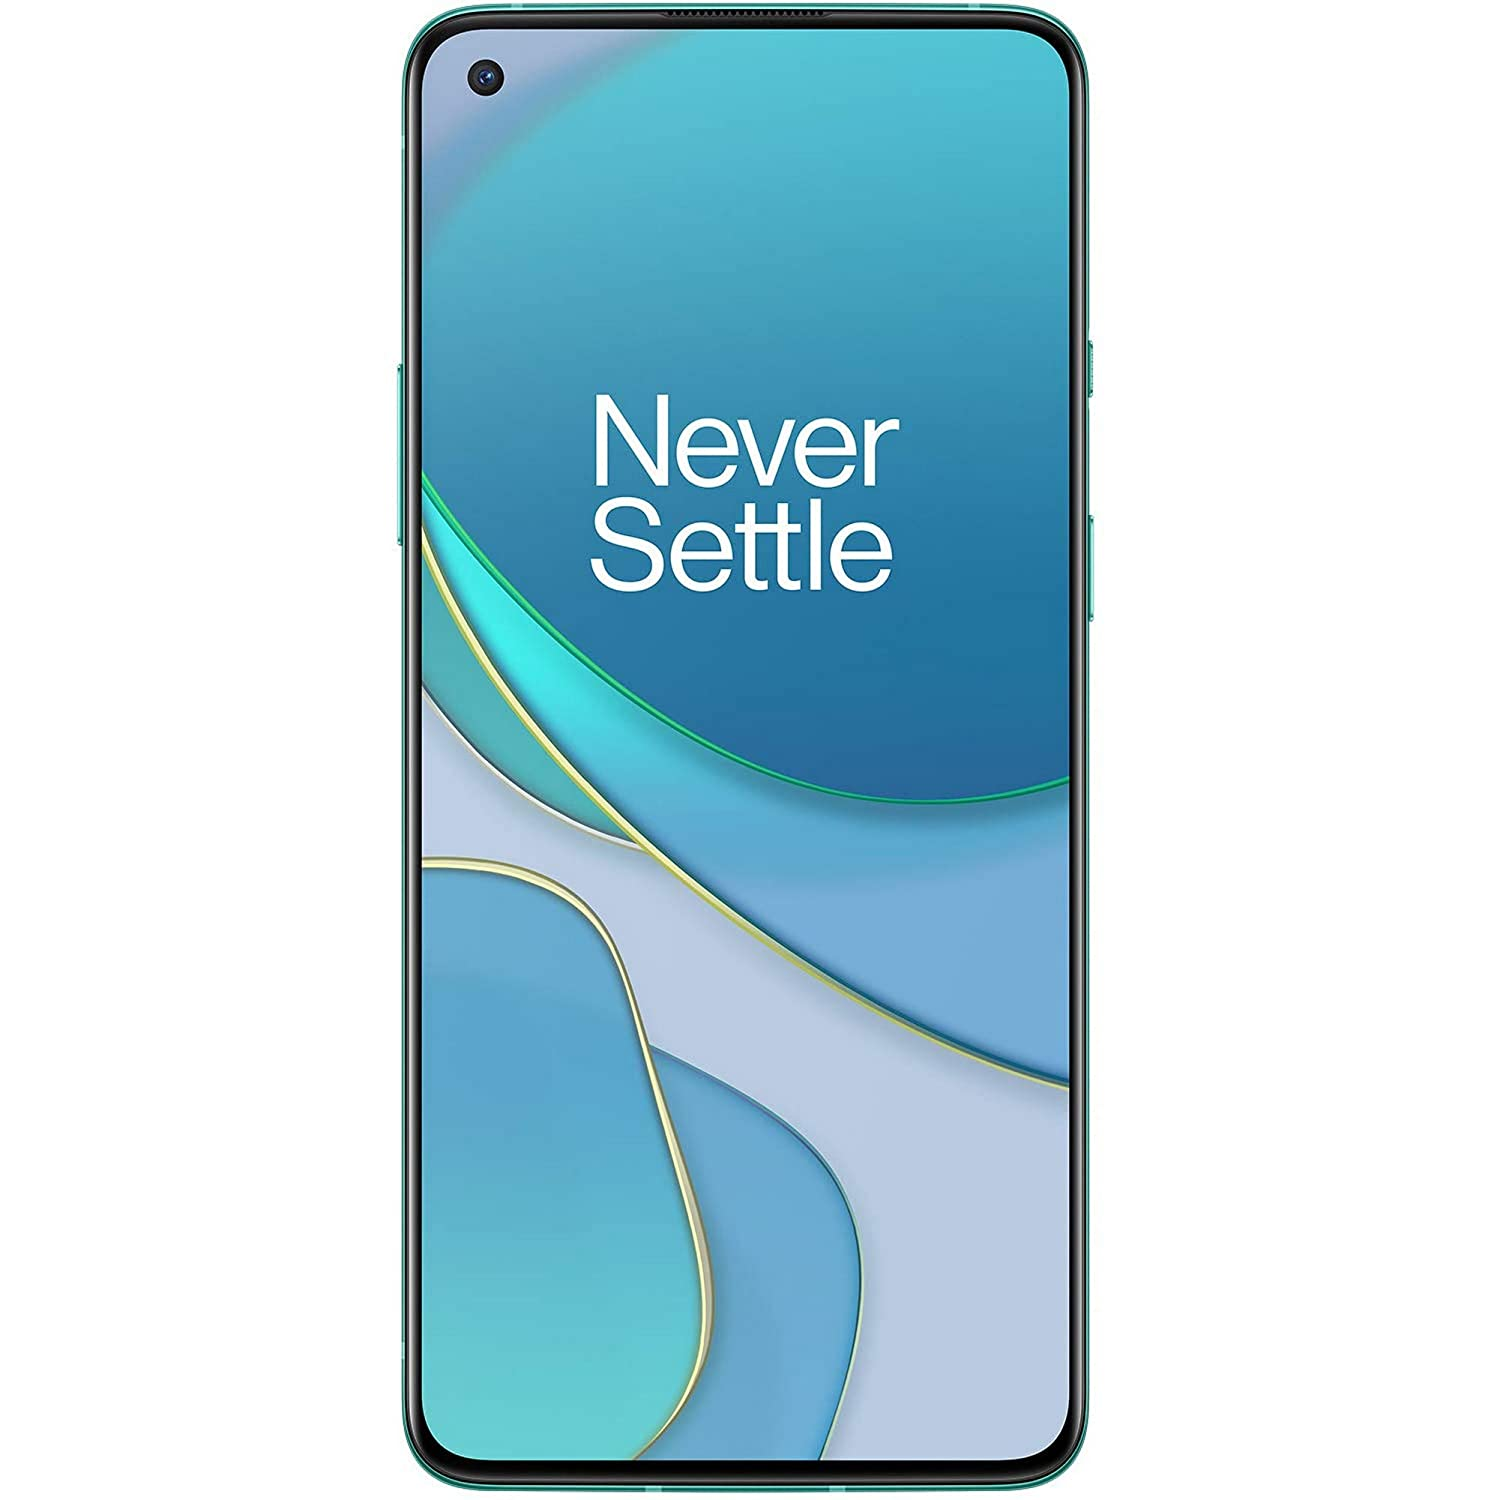 OnePlus 8T 5G (Aquamarine Green, 8GB RAM, 128GB Storage)